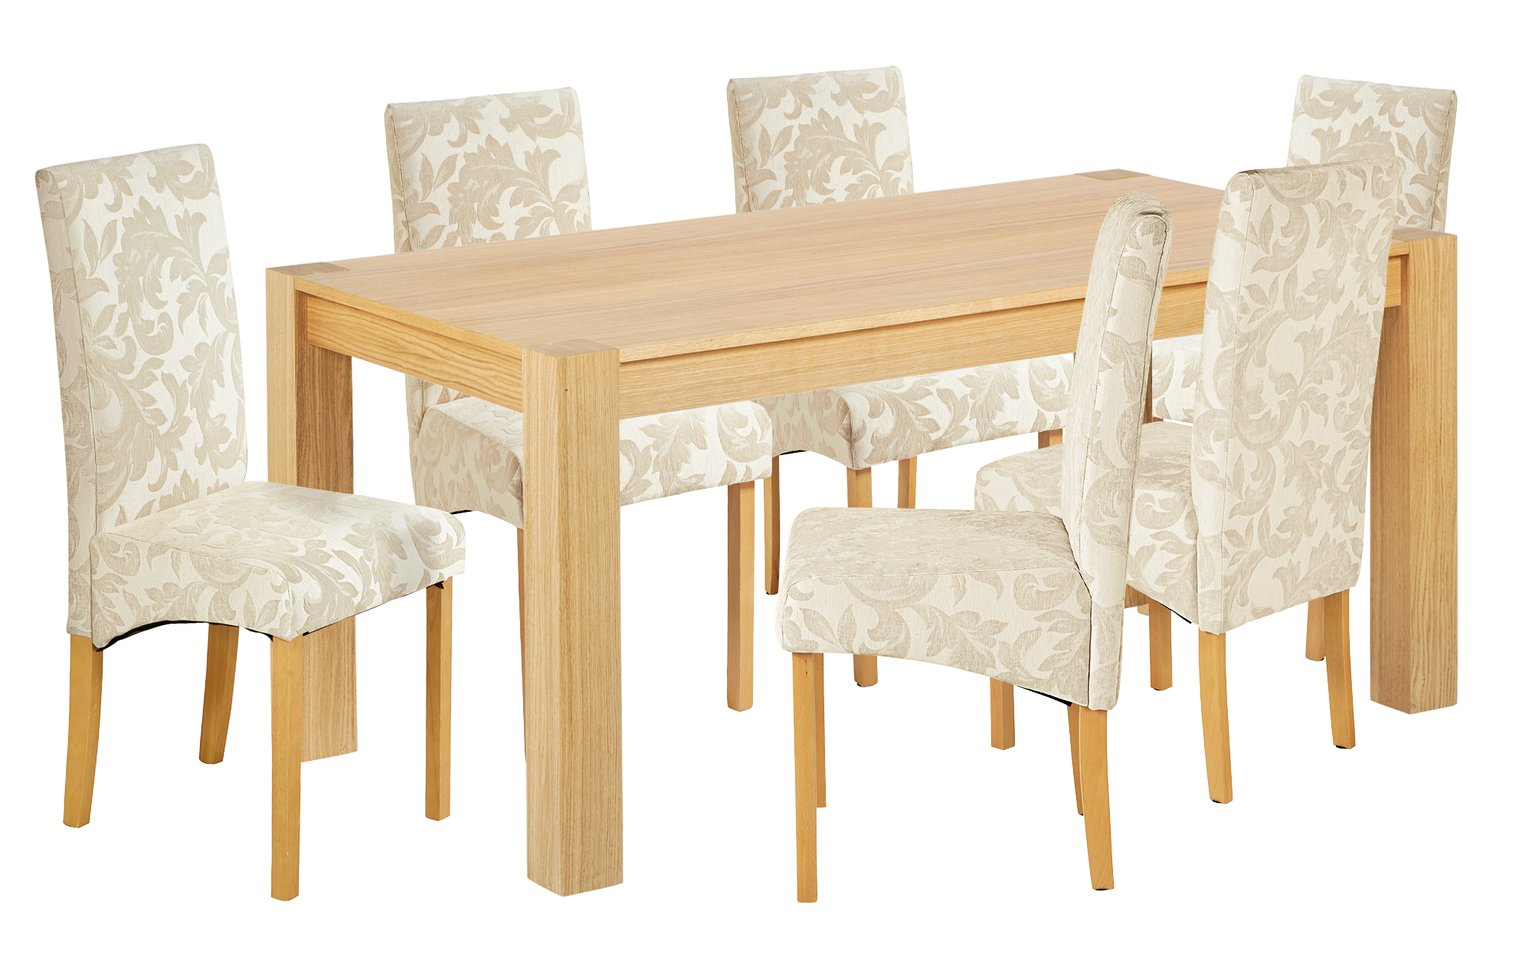 hideaway table and chairs argos bedroom chair for sale results folding dining home alston oak veneer 6